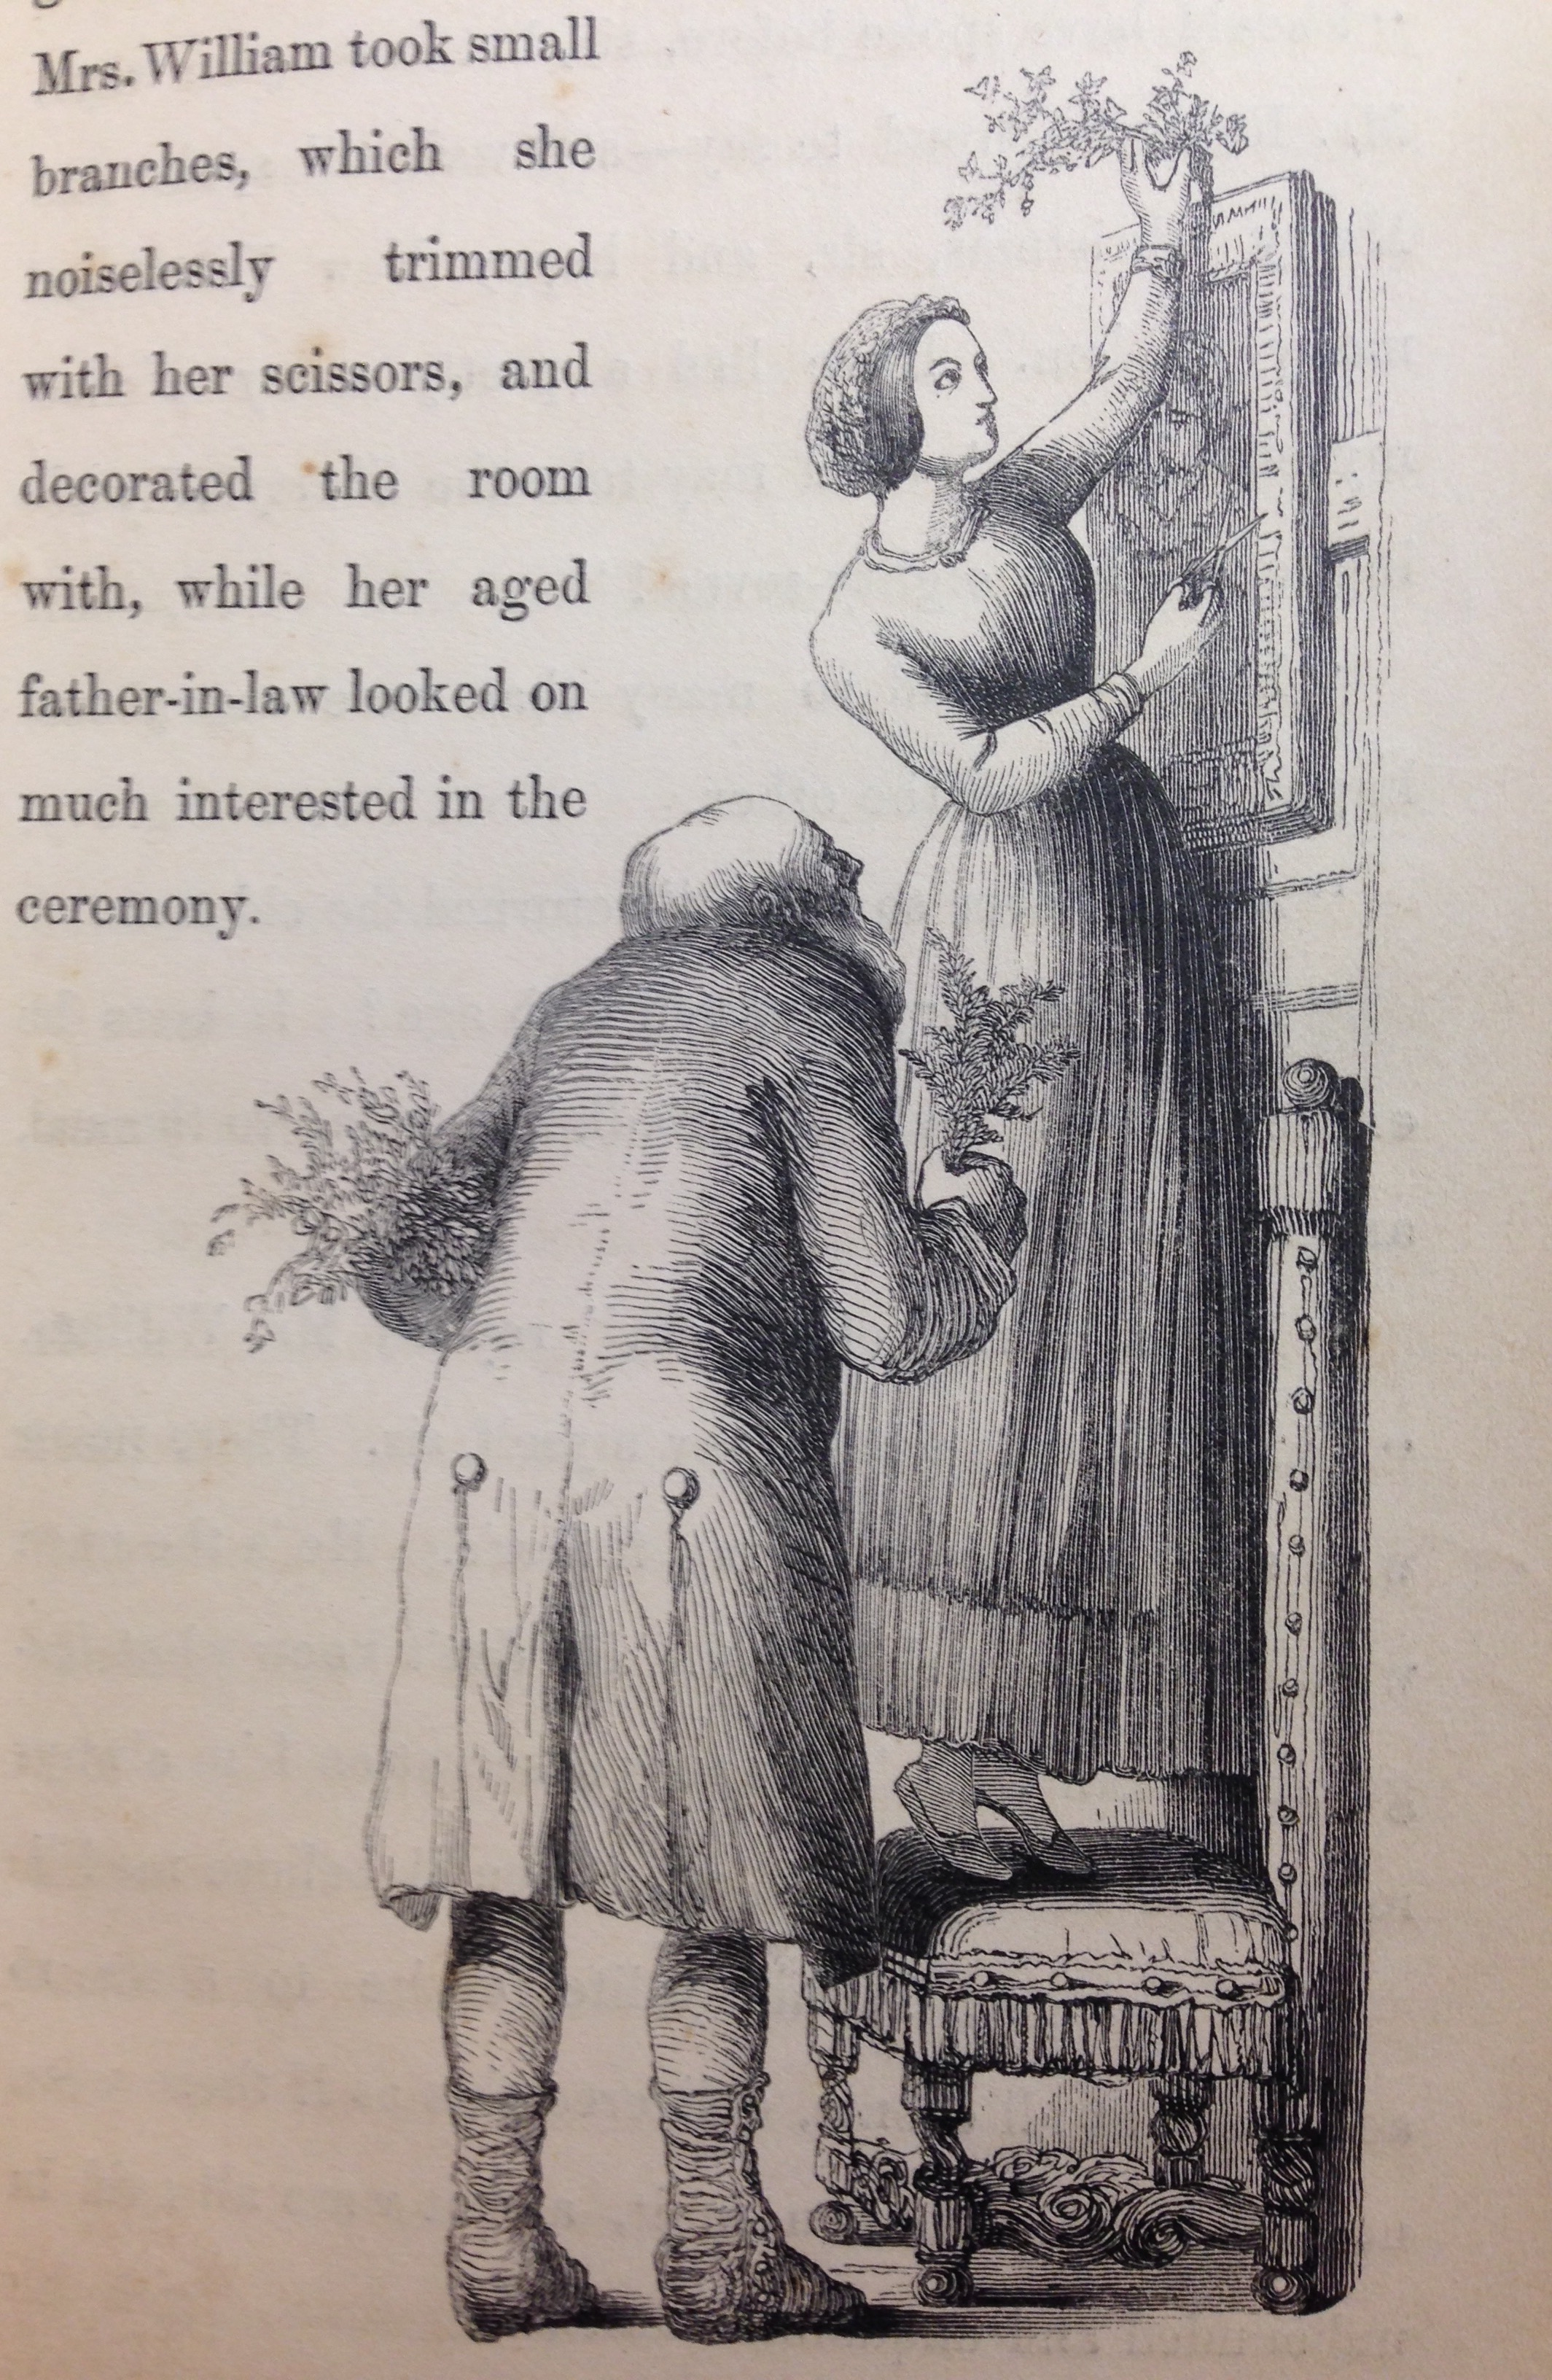 The 15 most bizarre sex tips from the Victorian era